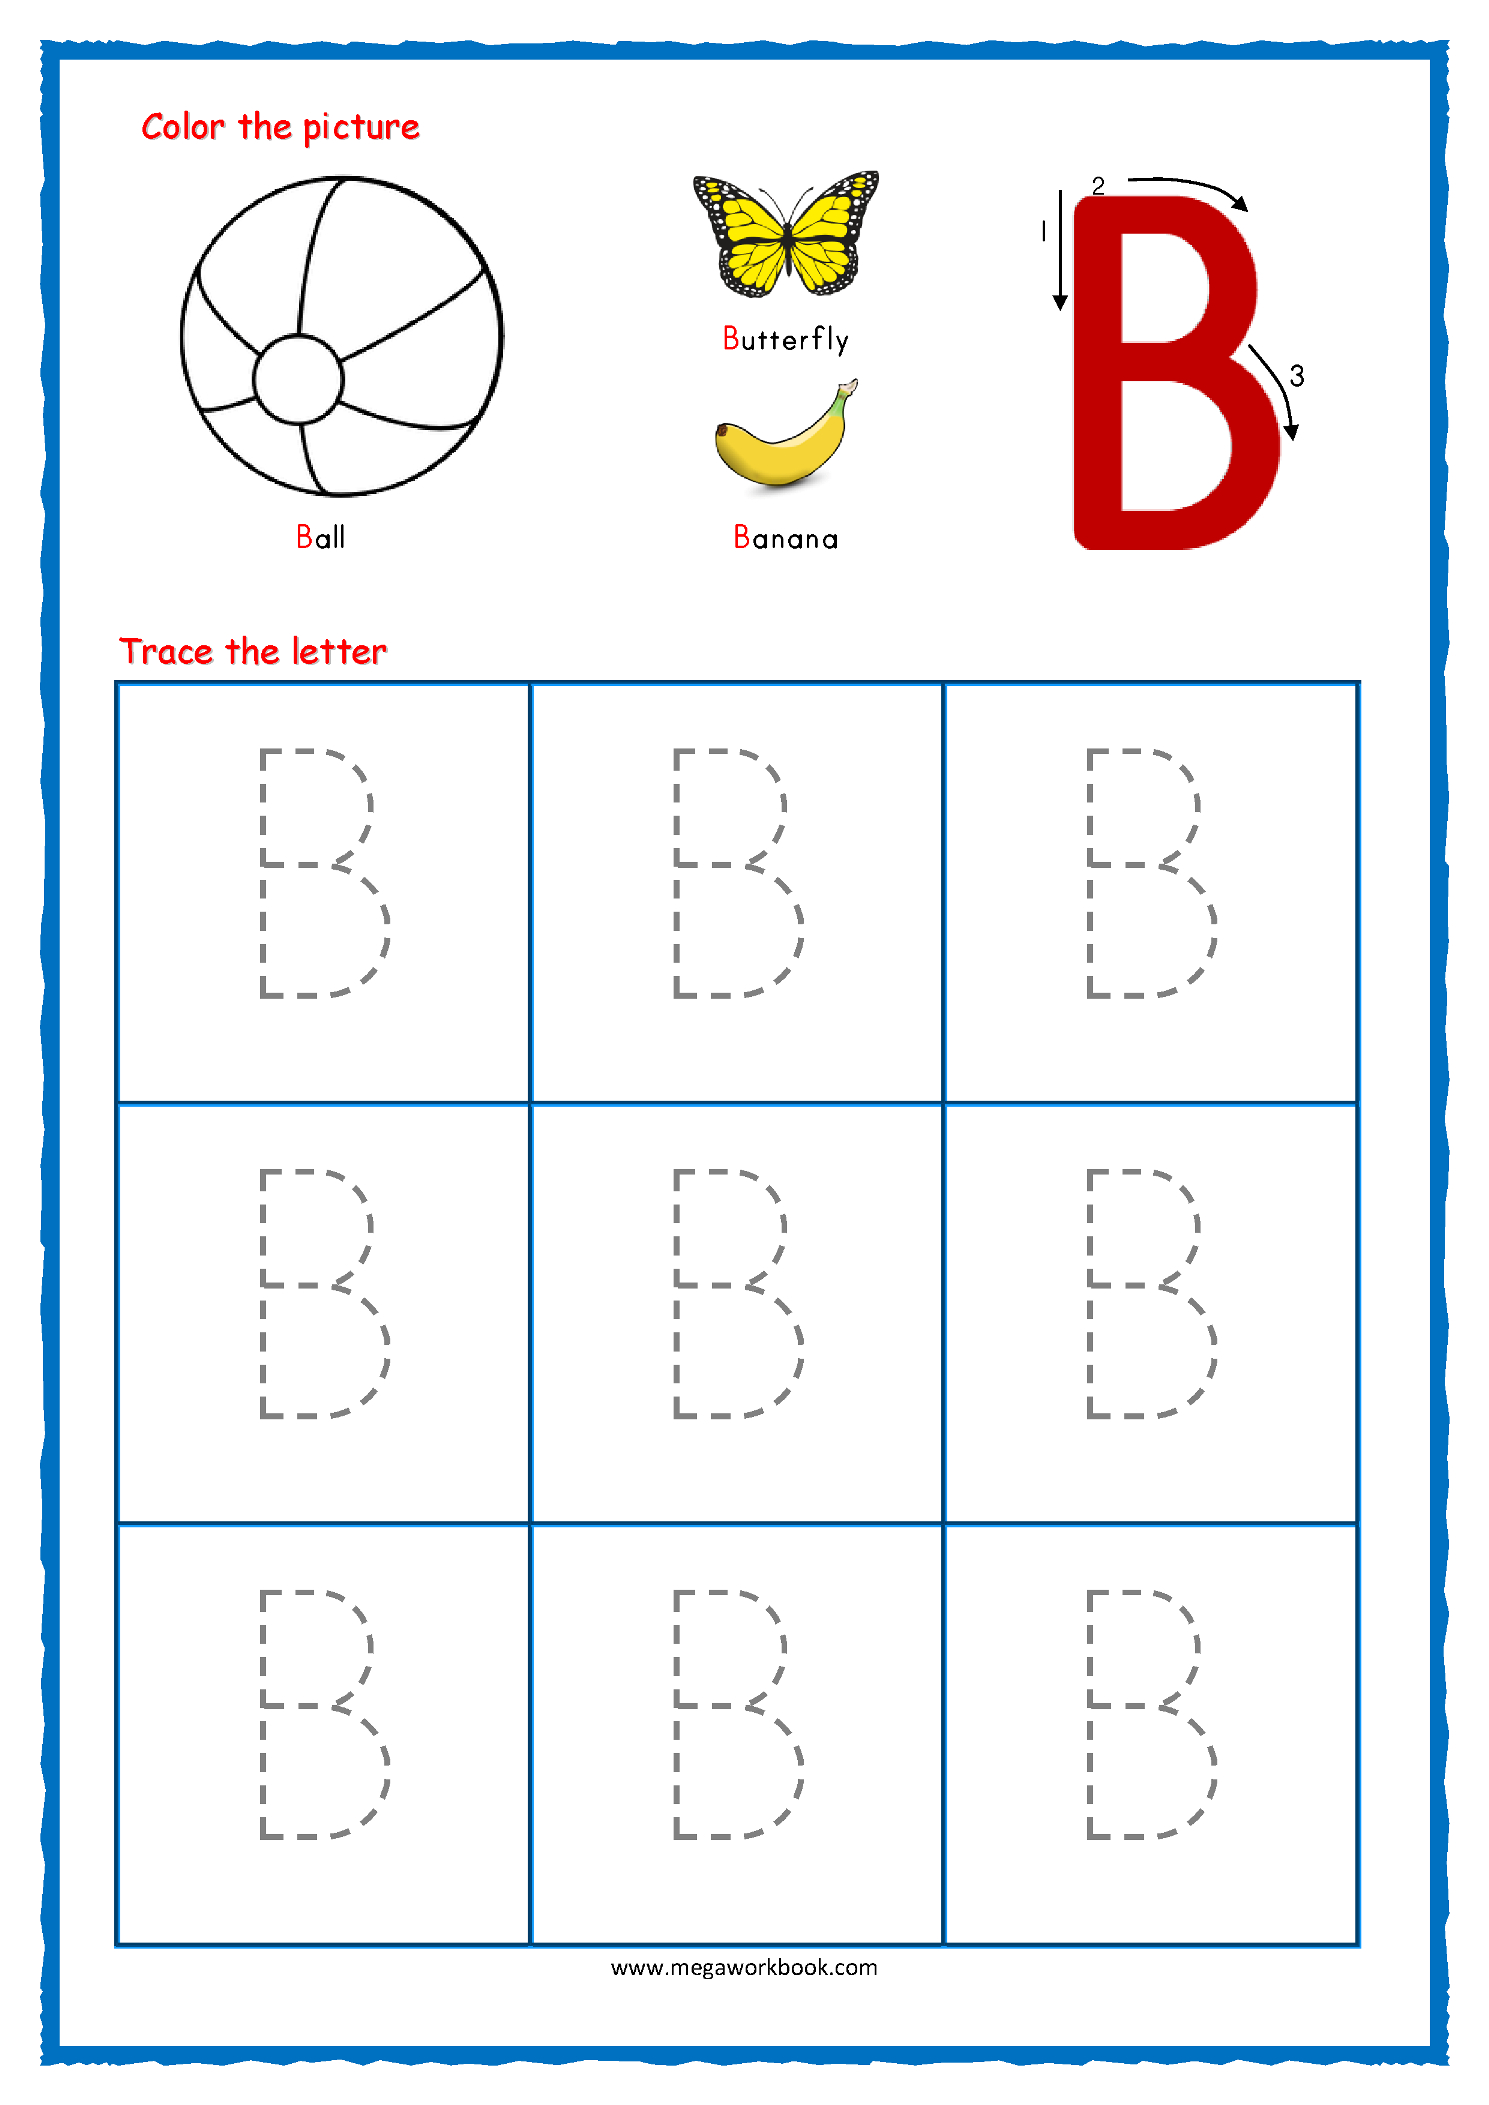 Tracing Letters - Alphabet Tracing - Capital Letters throughout Letter B Tracing Pages